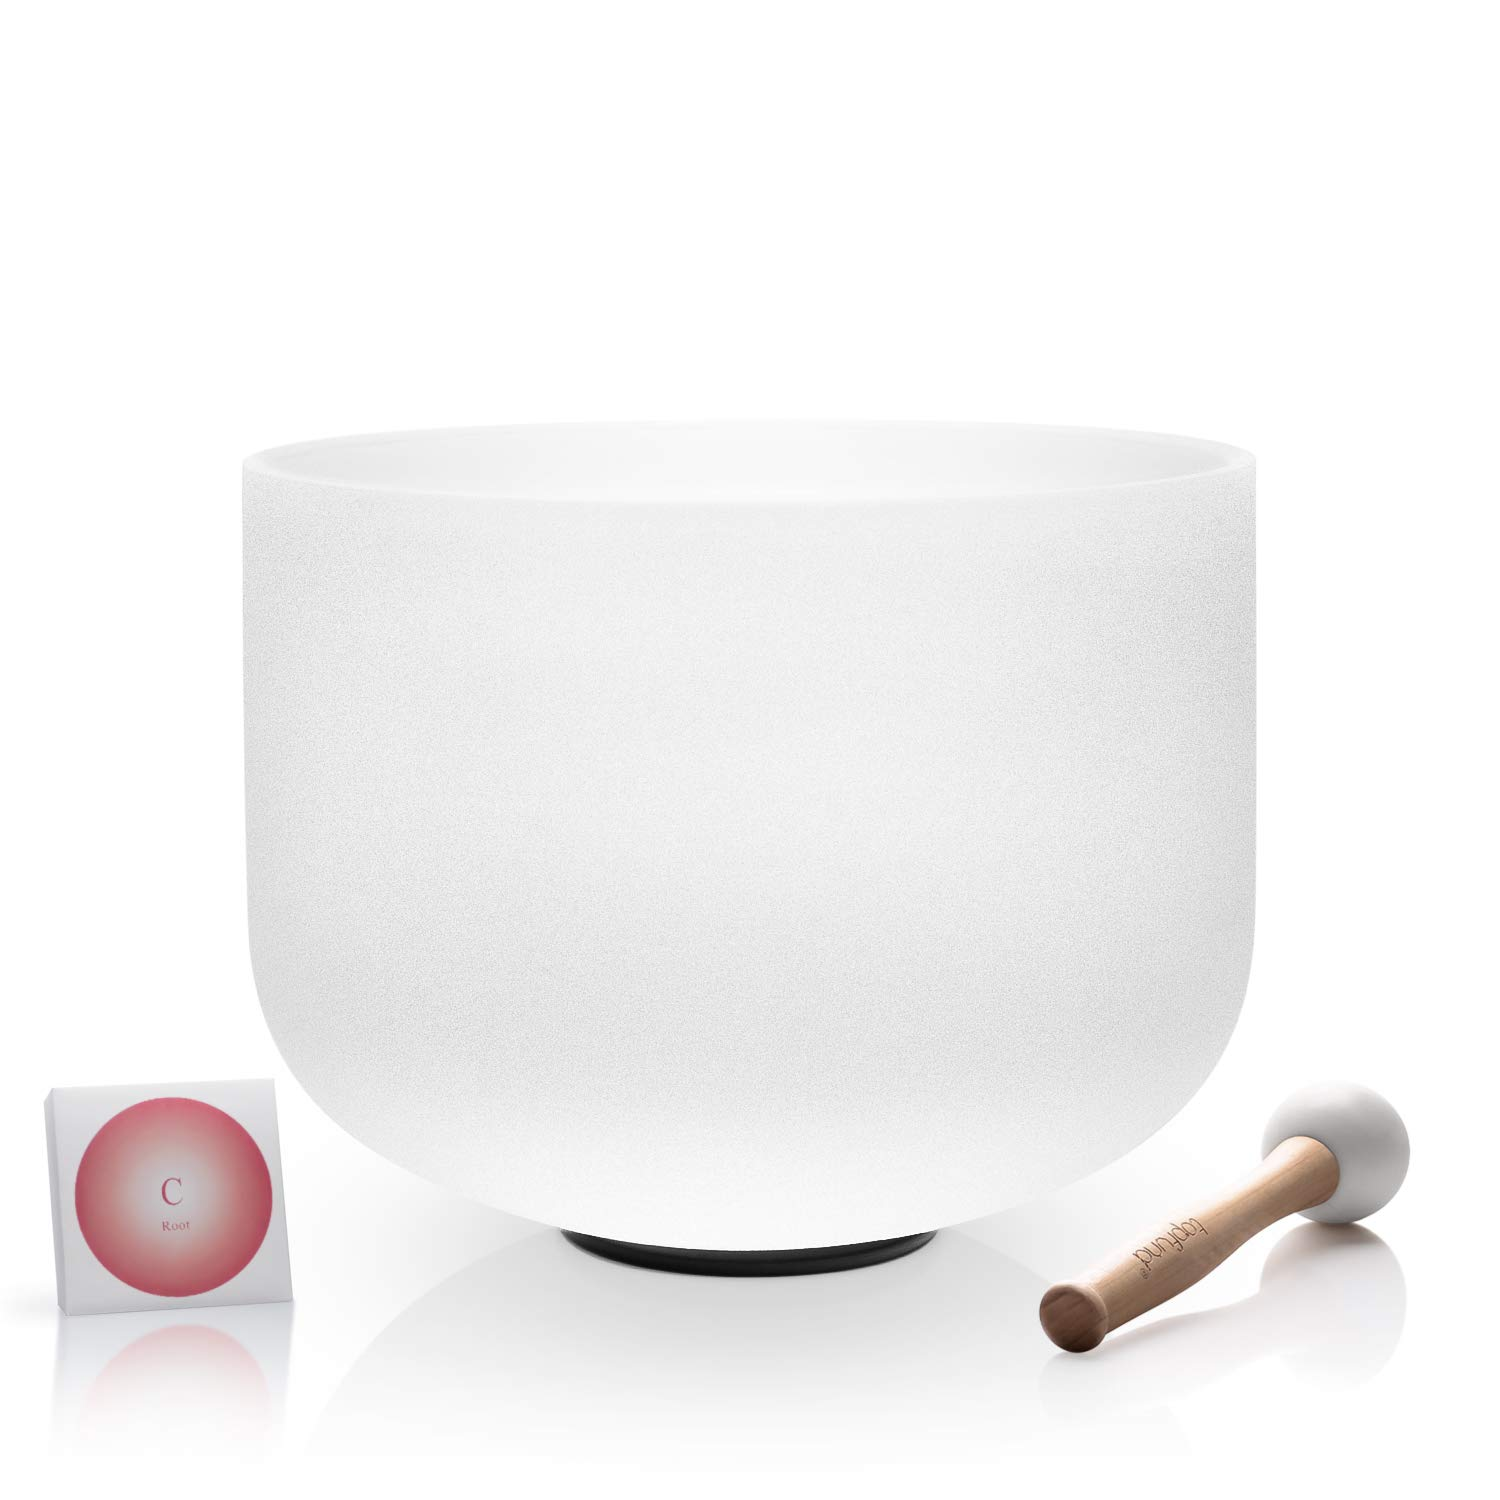 TOPFUND Quartz Crystal Singing Bowl C Note Root Chakra 12 inch O-ring and Rubber Mallet Included